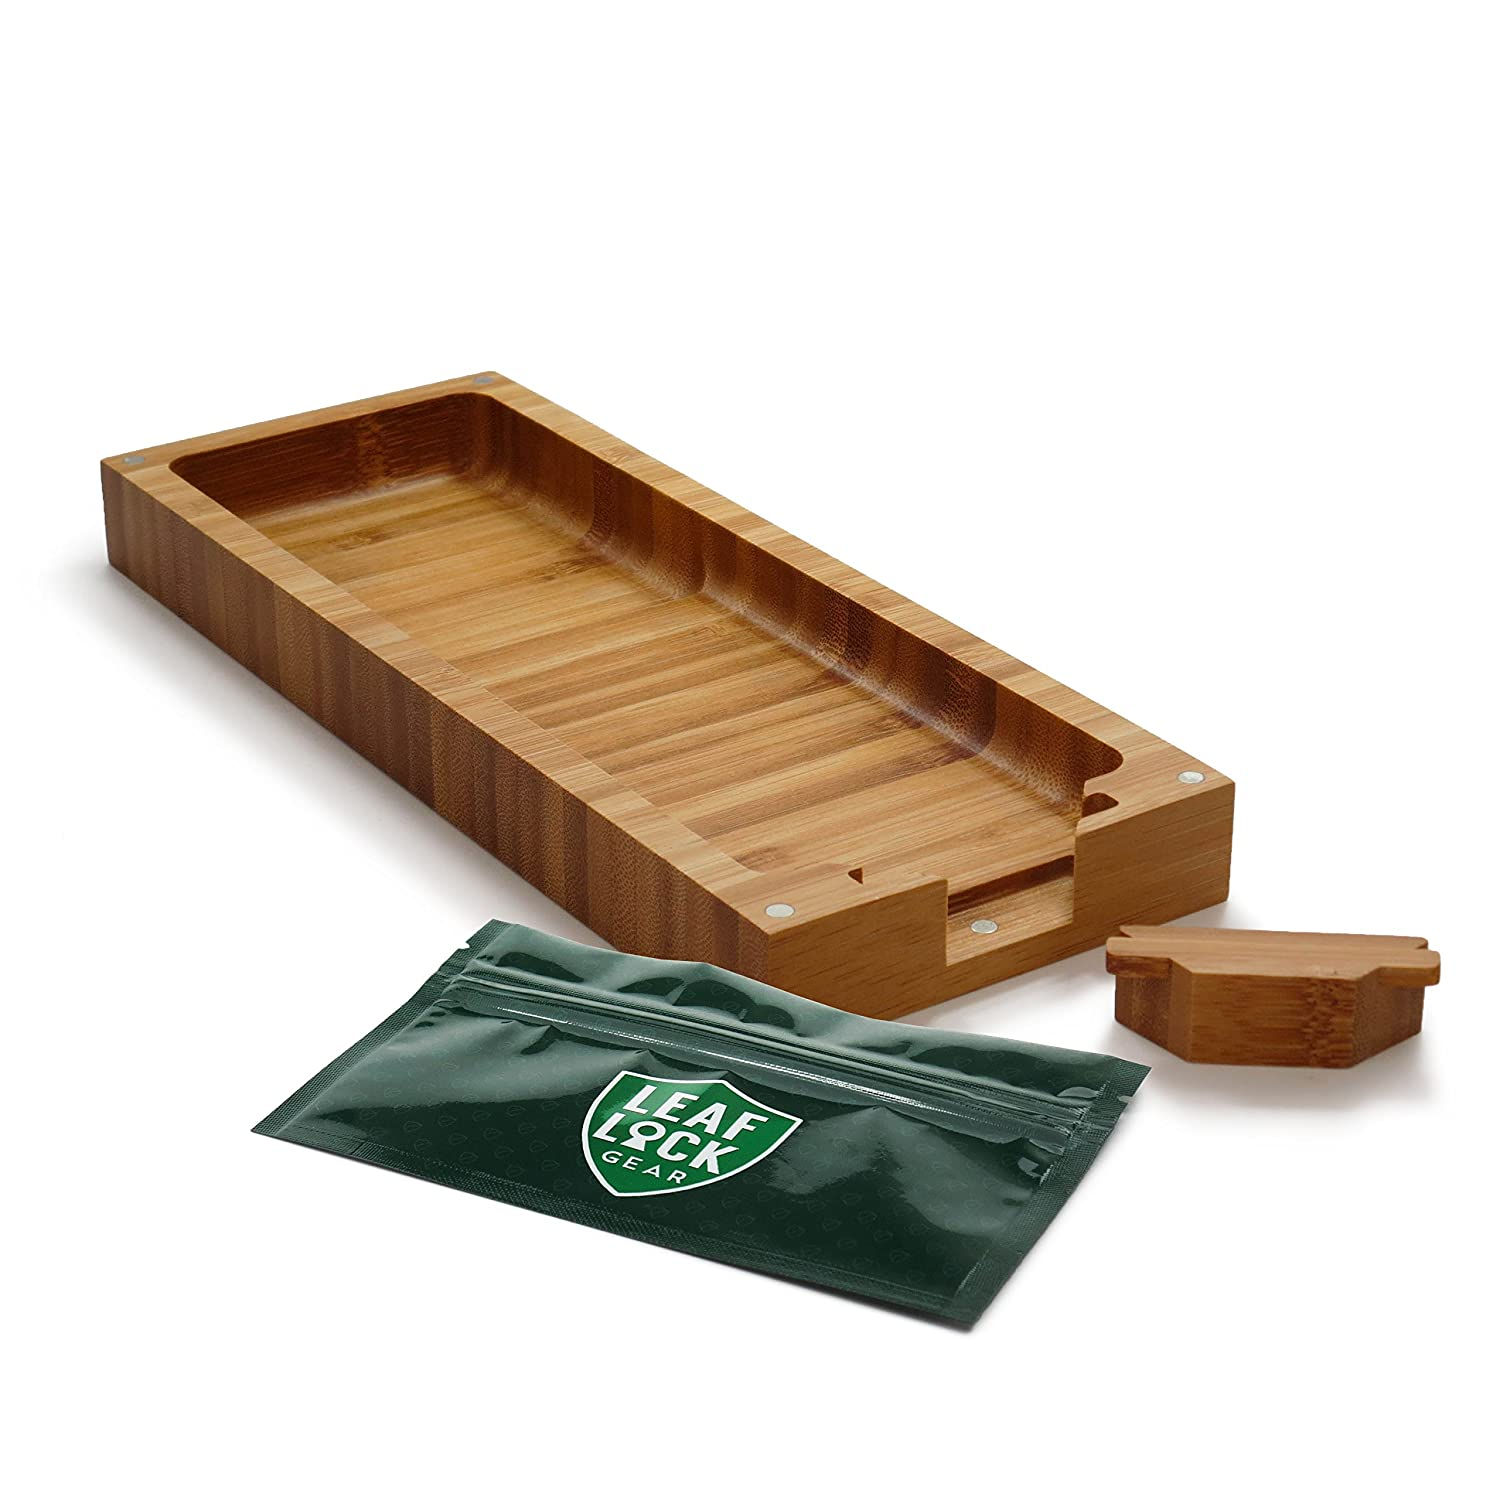 Amazon.com: RAW Triple Flip Magnetic Bamboo Rolling Tray with Leaf Lock Gear Smell Proof Tobacco Pouch: Health & Personal Care